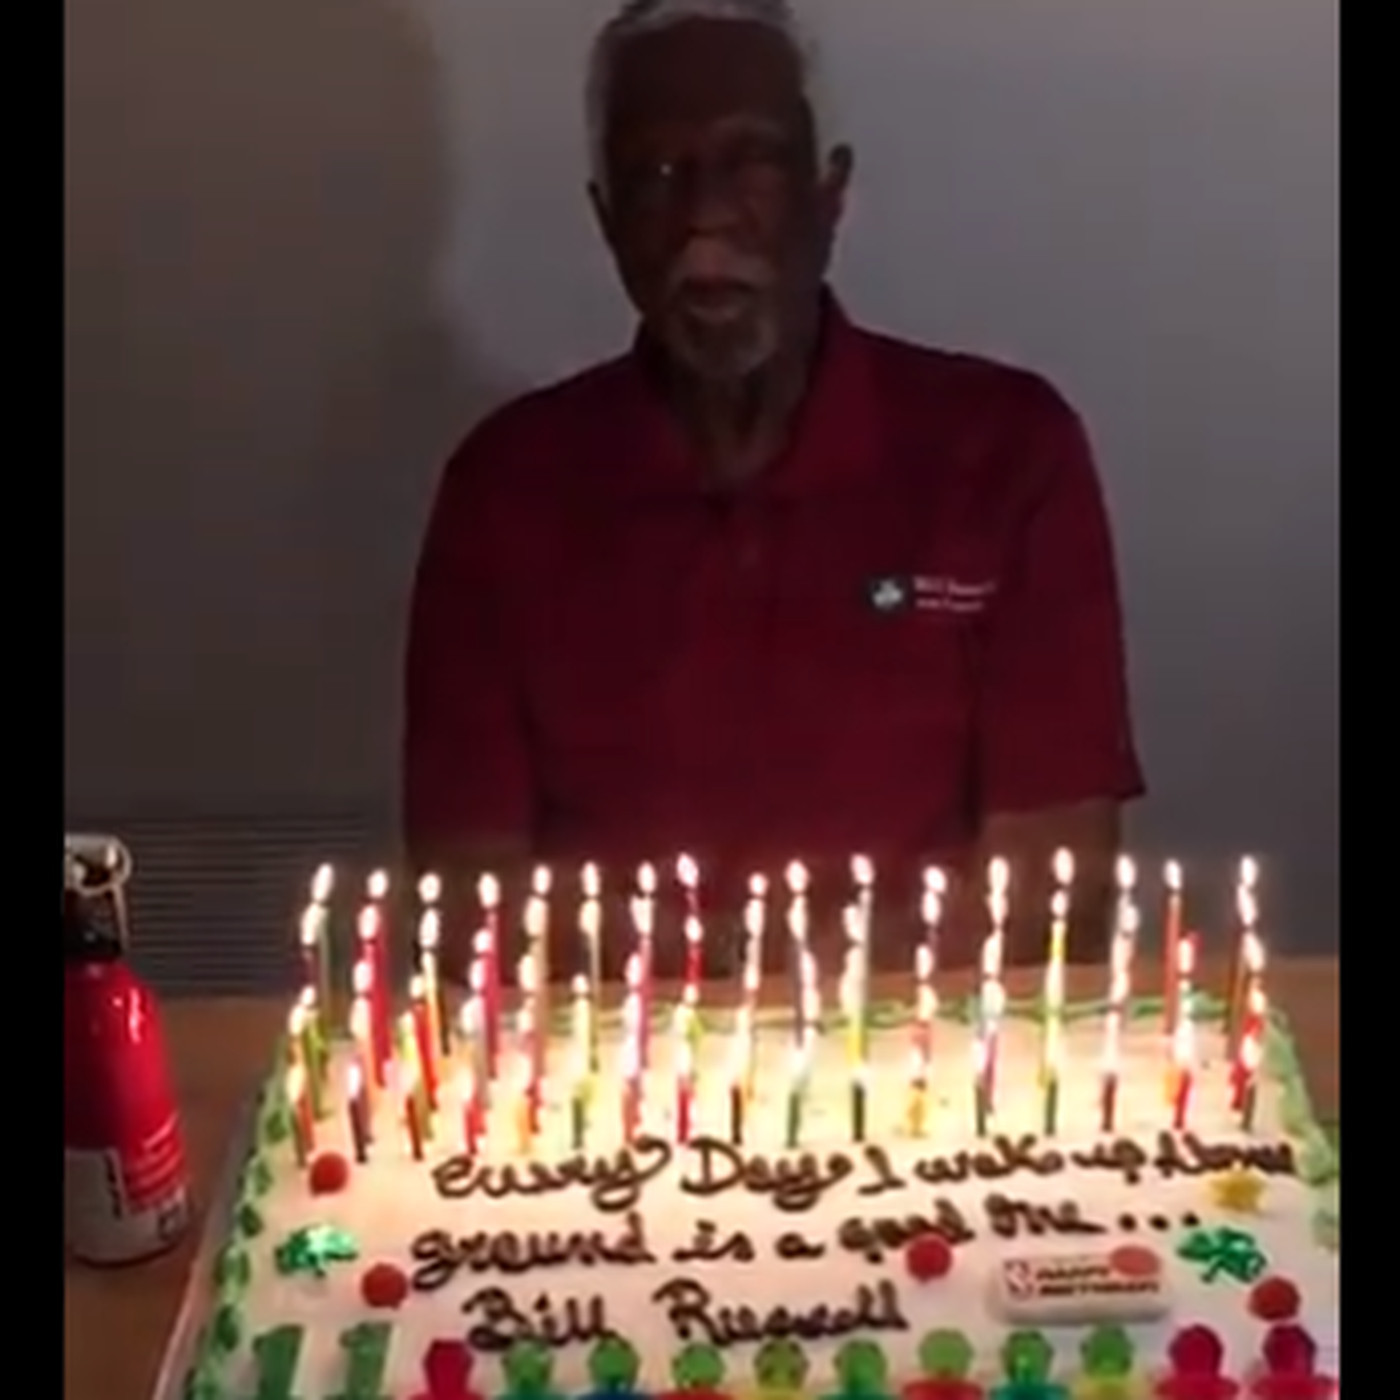 Bill Russell Celebrated His 85th Birthday With Cake For Breakfast And 11 Ring Pops